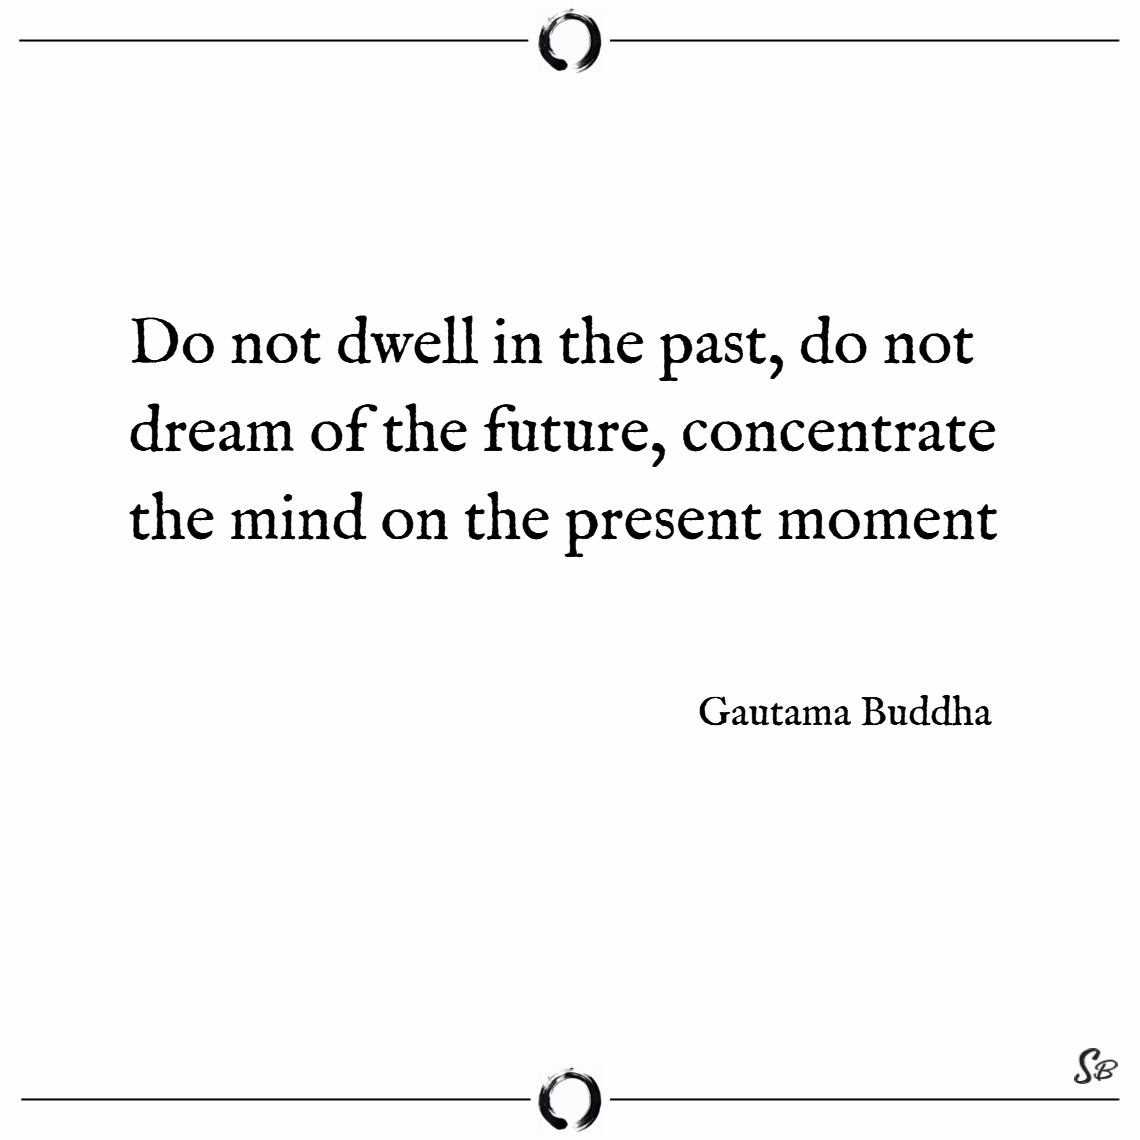 Do not dwell in the past, do not dream of the future, concentrate the mind on the present moment. – gautama buddha Buddhism quotes